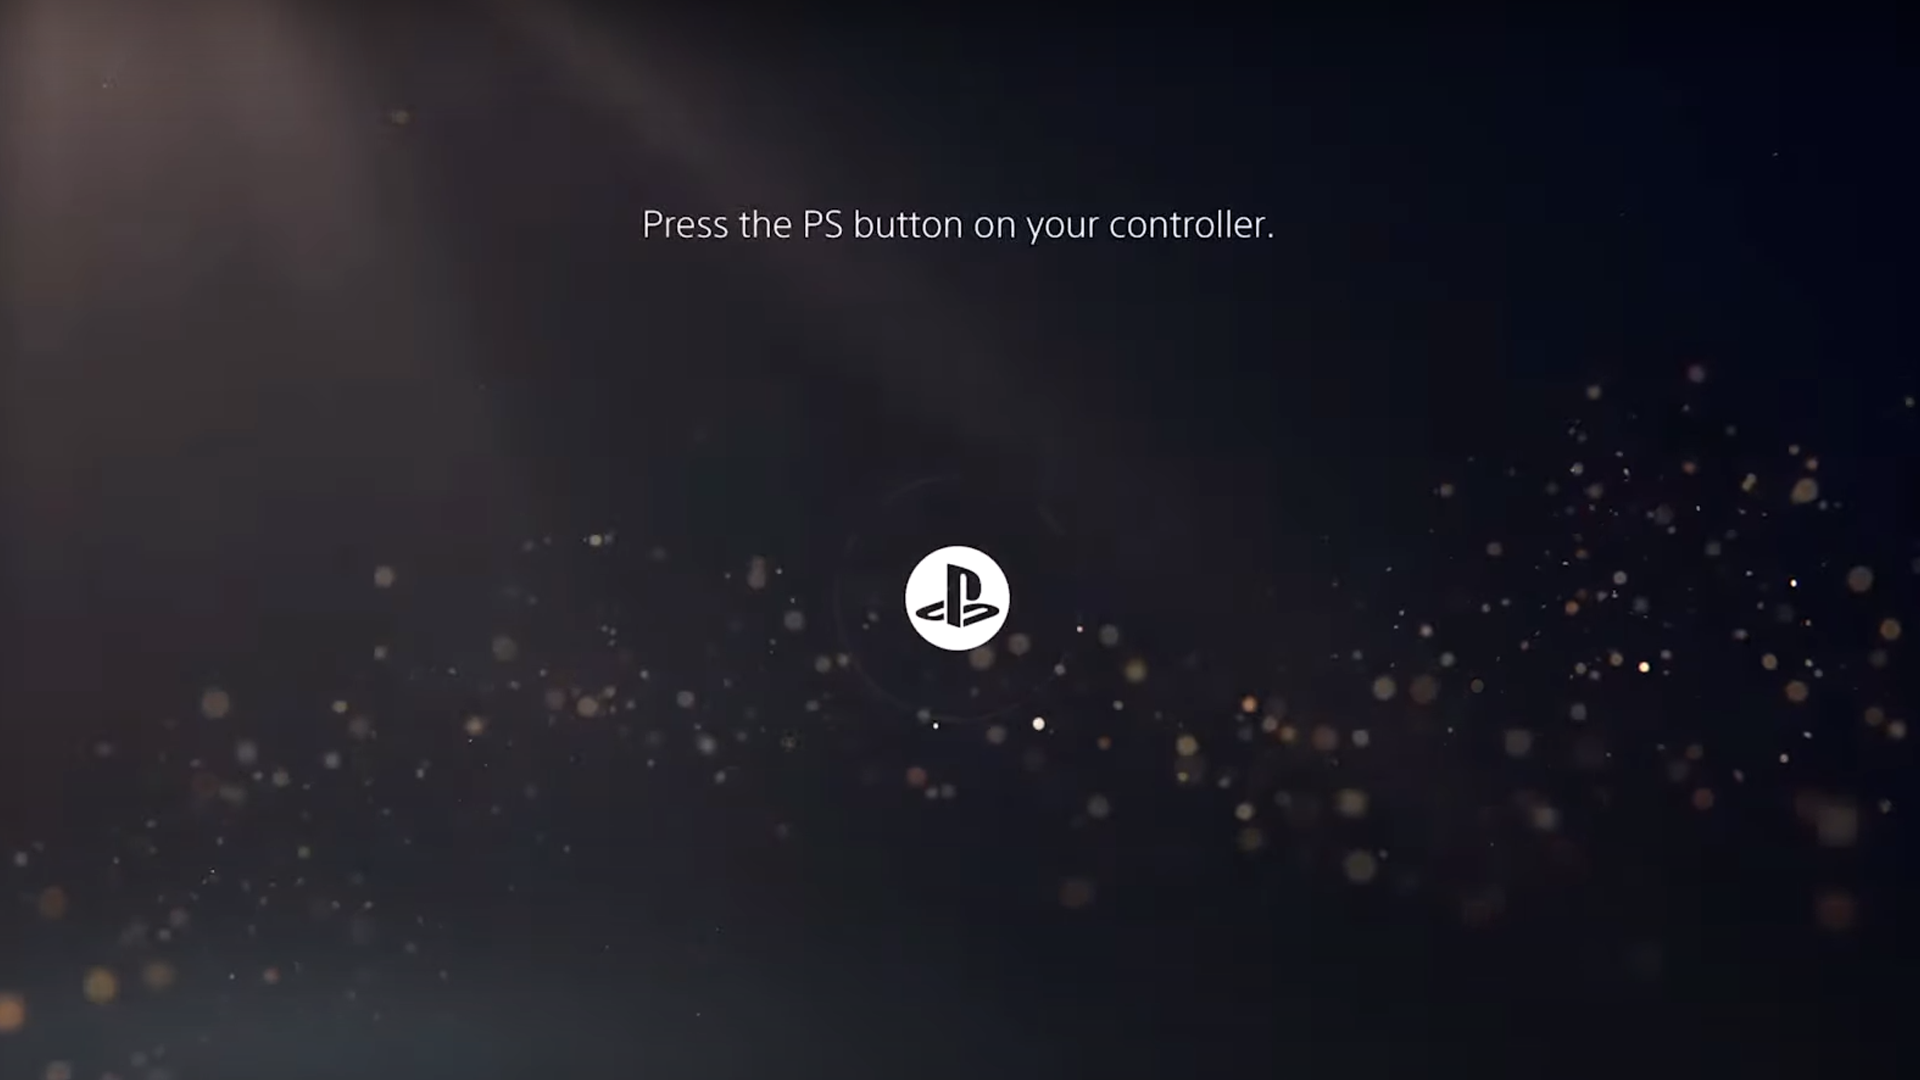 PS5 startup screen UI